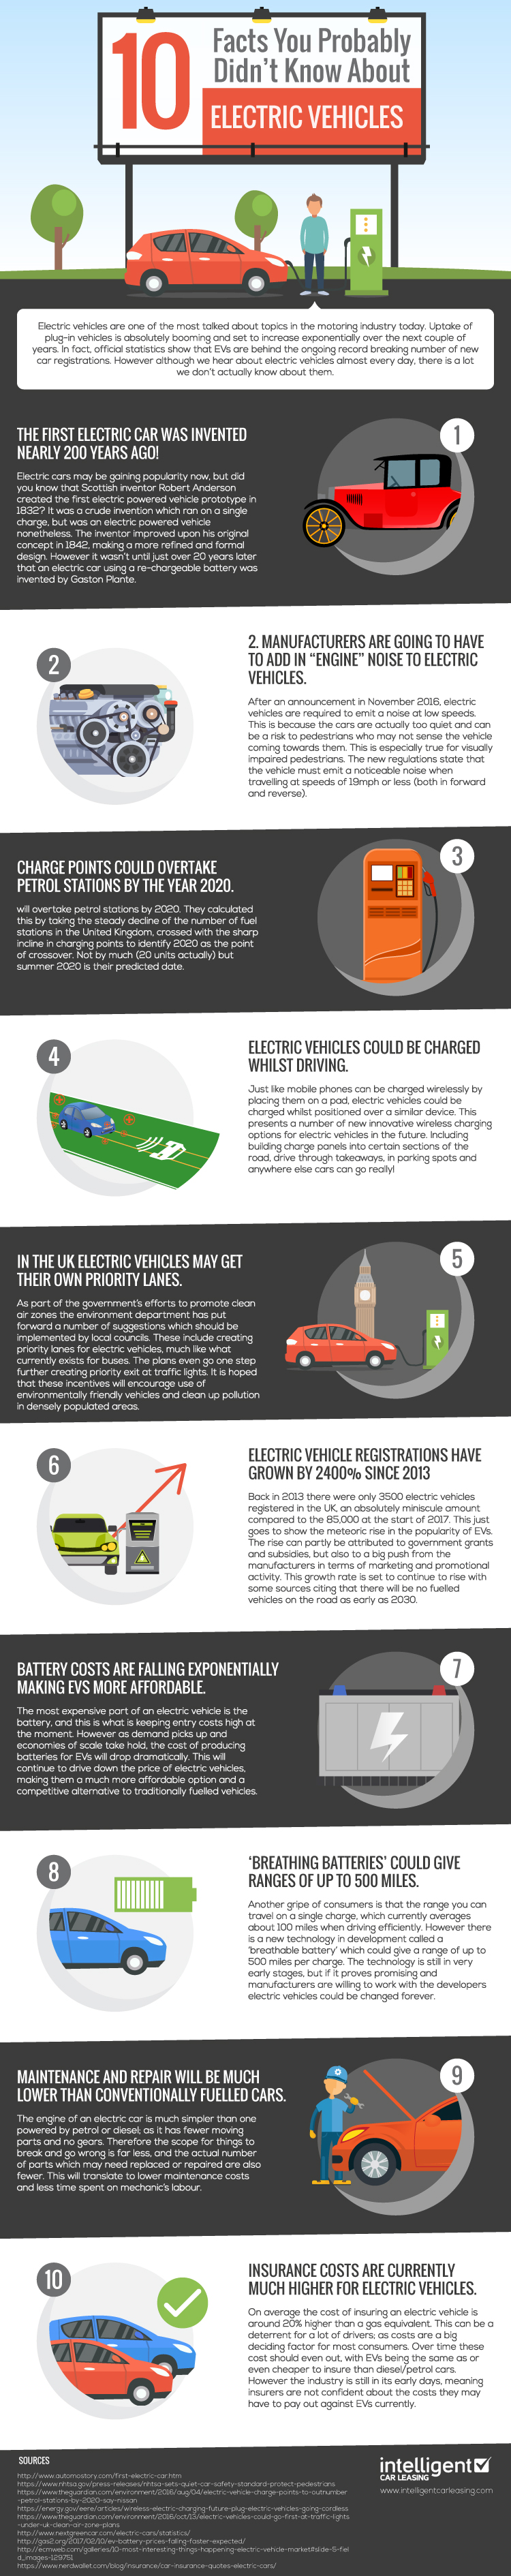 10 facts you probably didn't know about electric vehicles